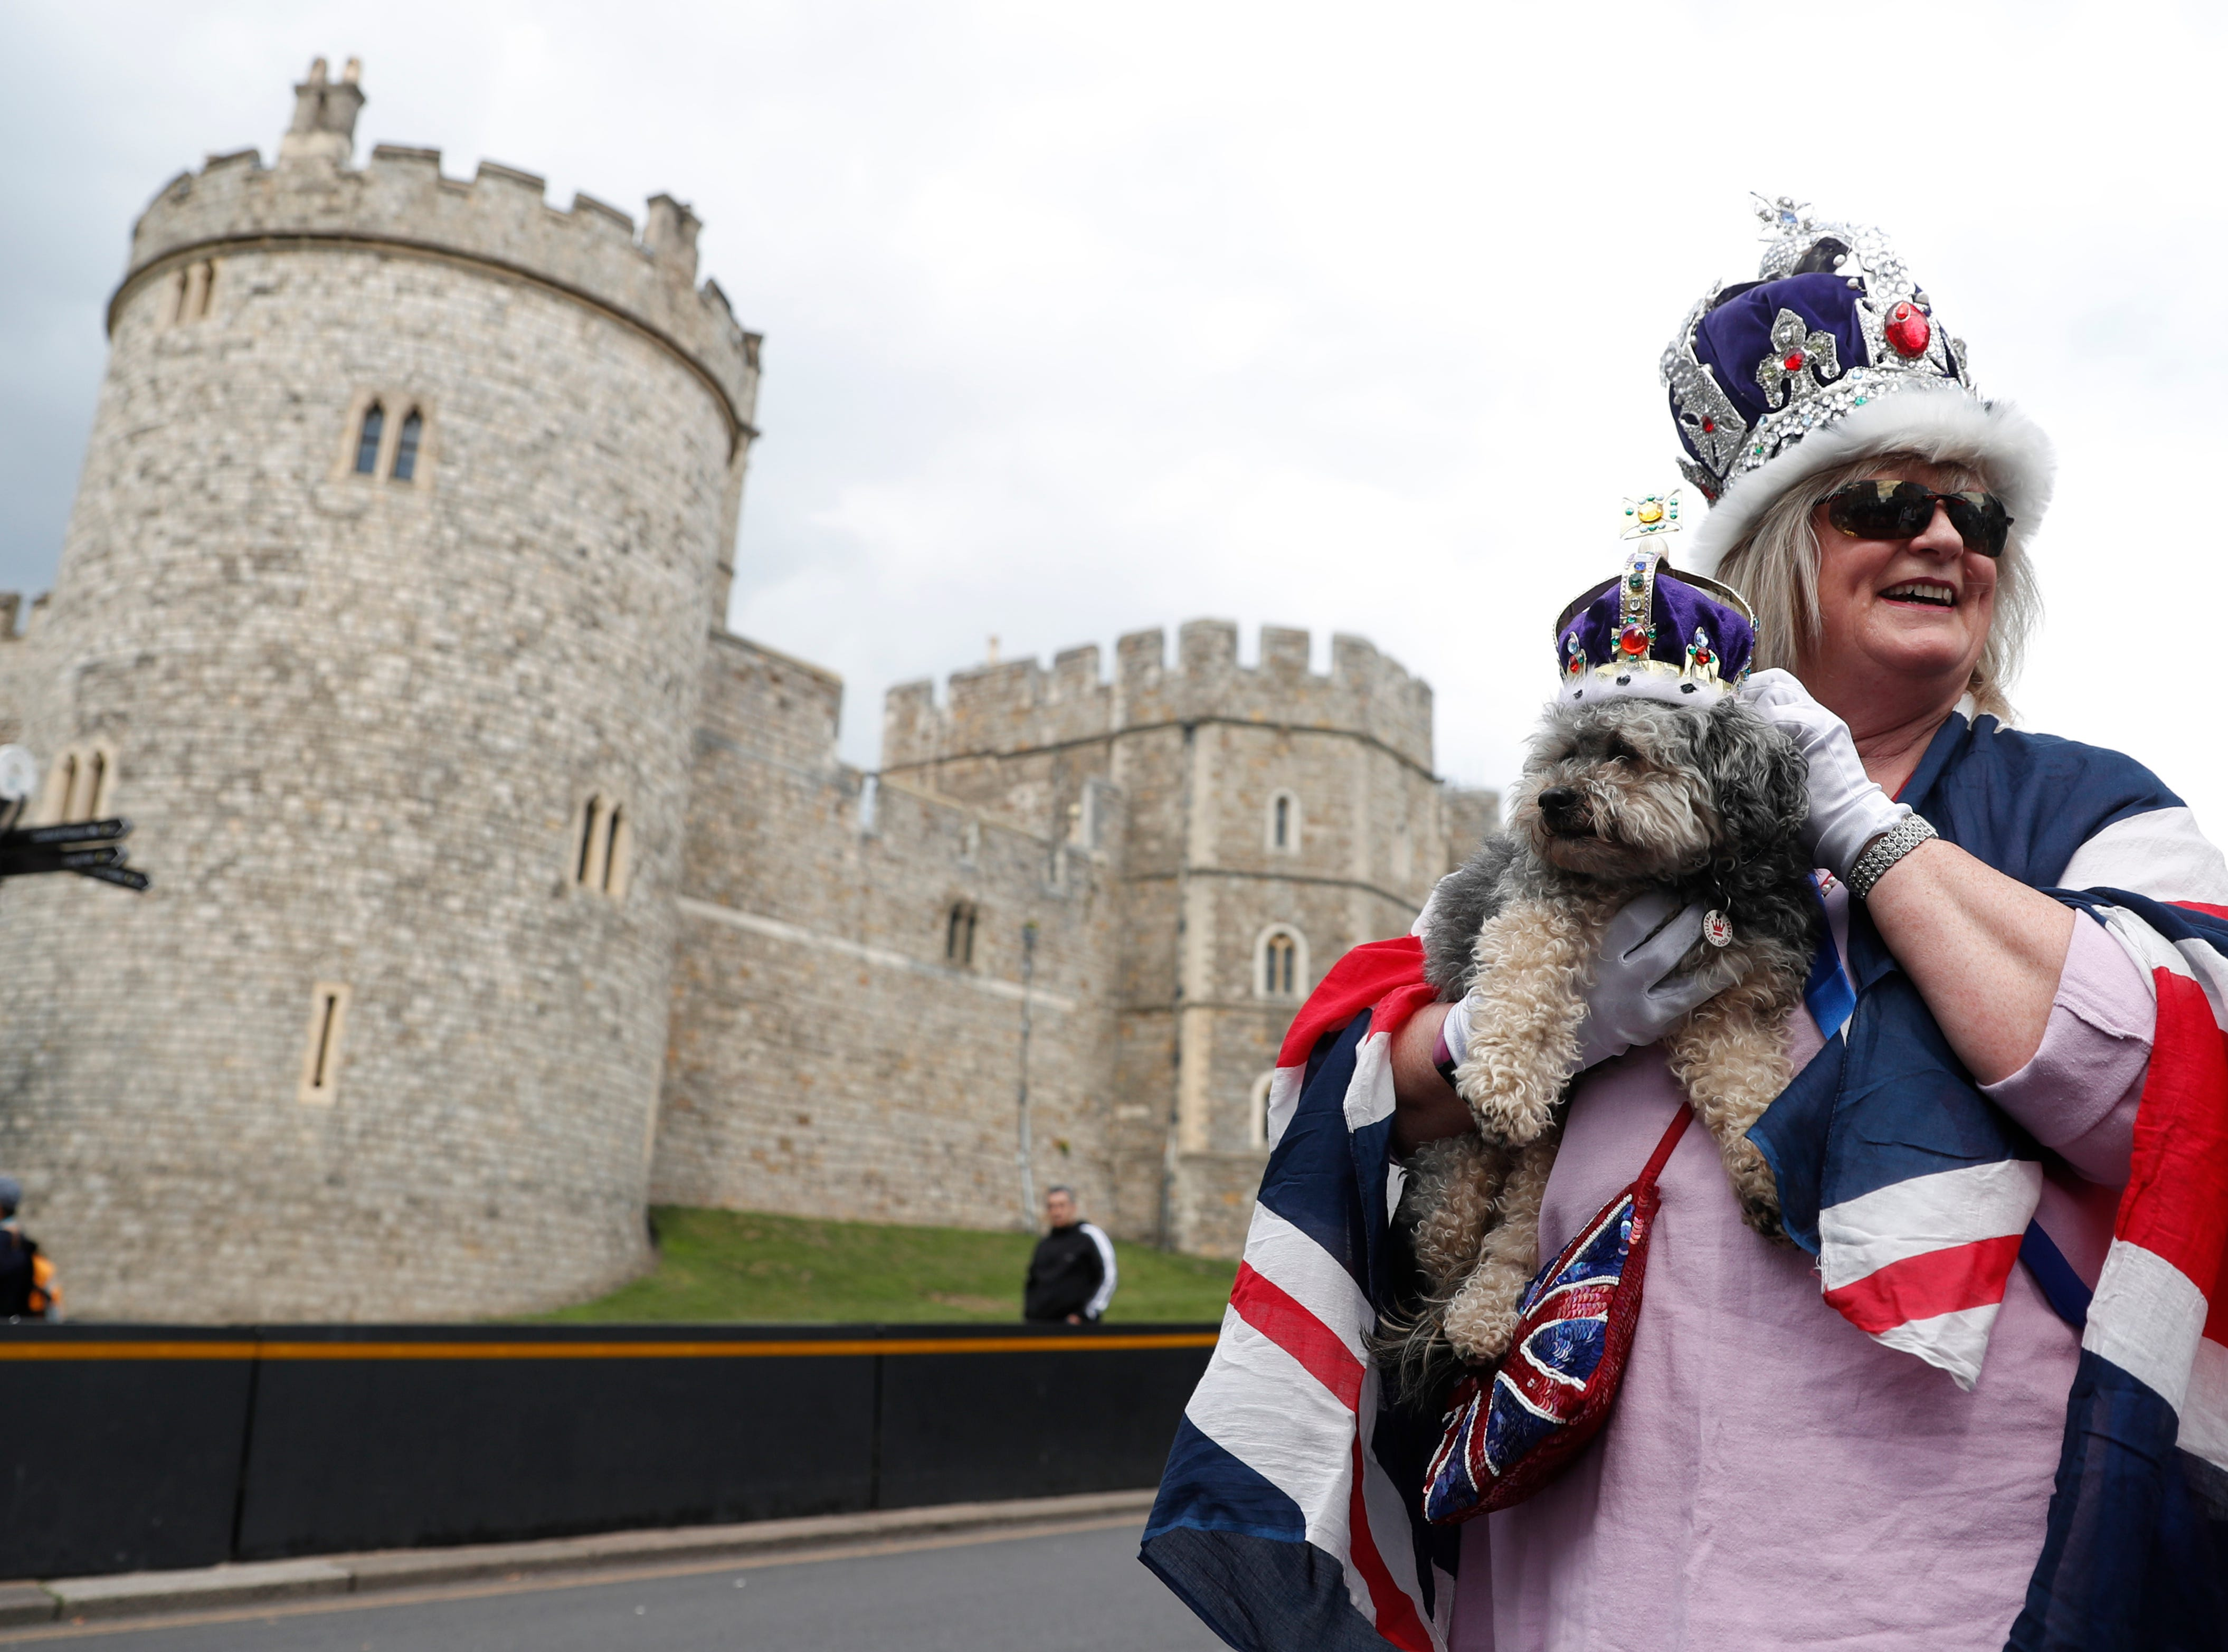 Royal fan Caroline Wagstaff and her dog Boots poses for the media outside Windsor Castle, Windsor, England, Tuesday May 7, 2019. The as-yet-unnamed baby arrived less than a year after Prince Harry wed Meghan Markle in a spectacular televised event on the grounds of Windsor Castle that was watched the world over.